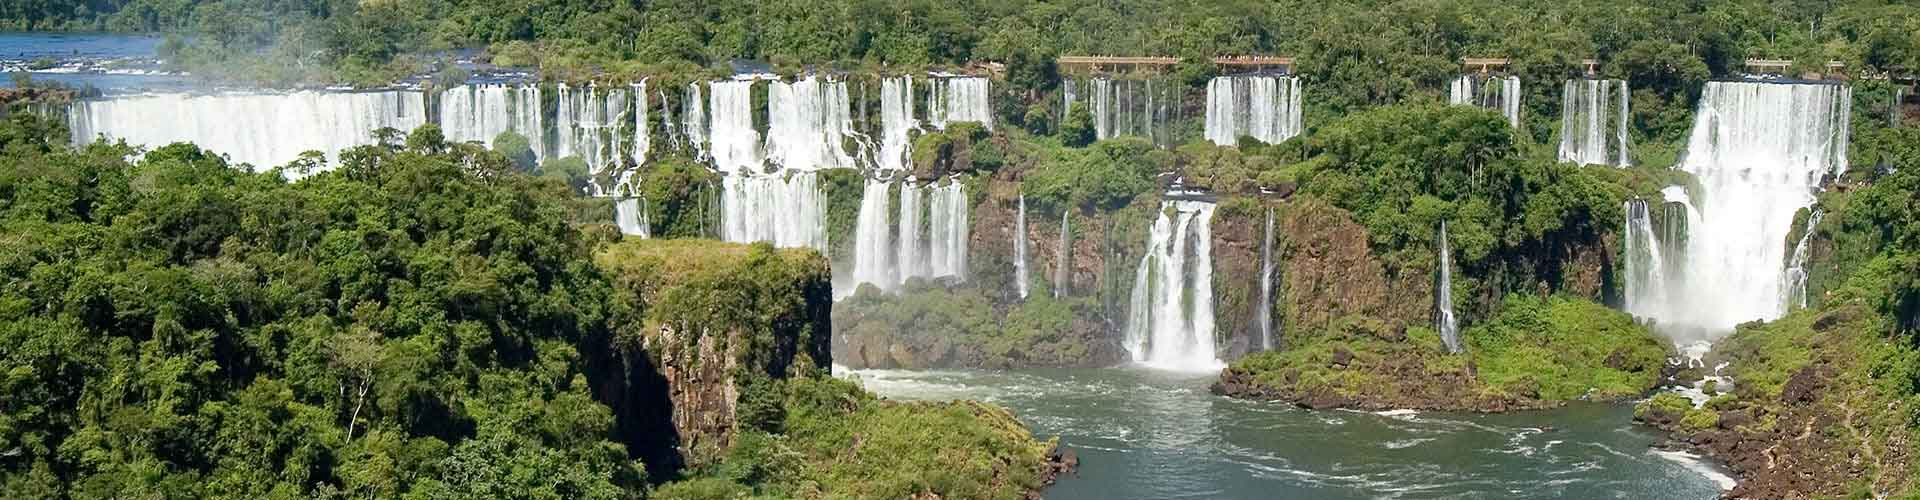 Foz do Iguazu – Hotels in Foz do Iguazu. Maps of Foz do Iguazu, Photos and Reviews for each Hotel in Foz do Iguazu.